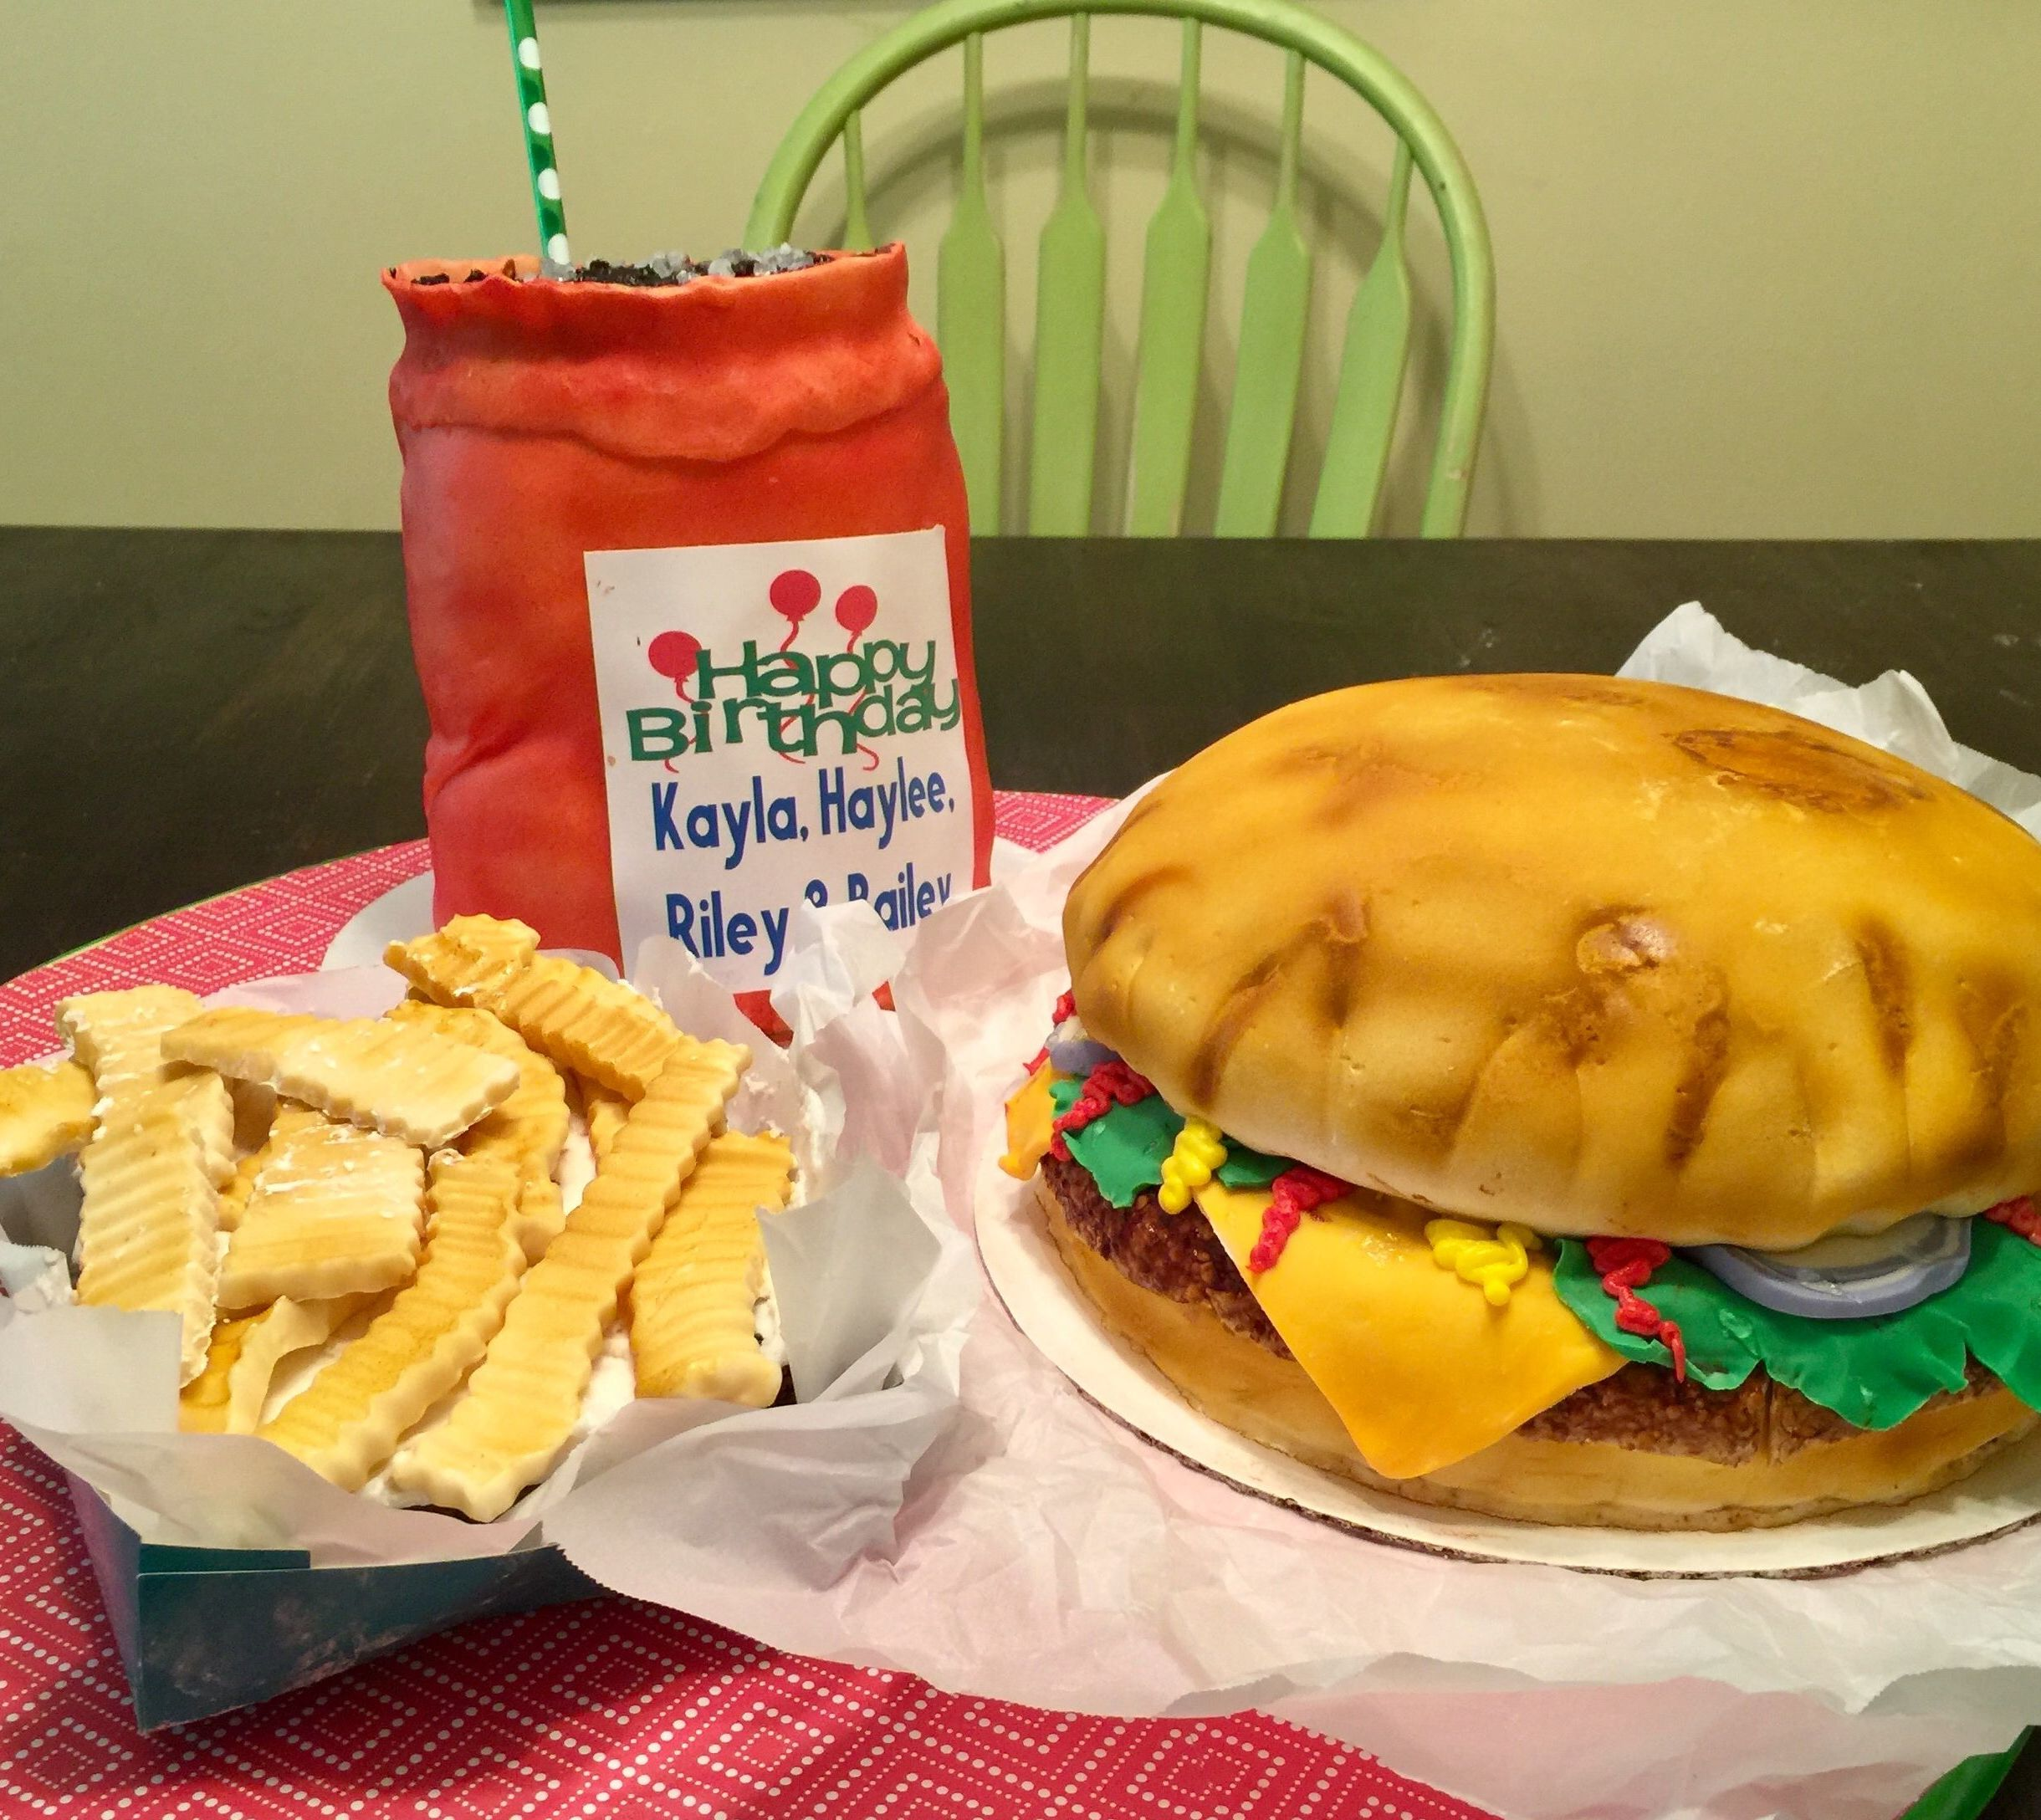 Cheeseburger Cake with Fries